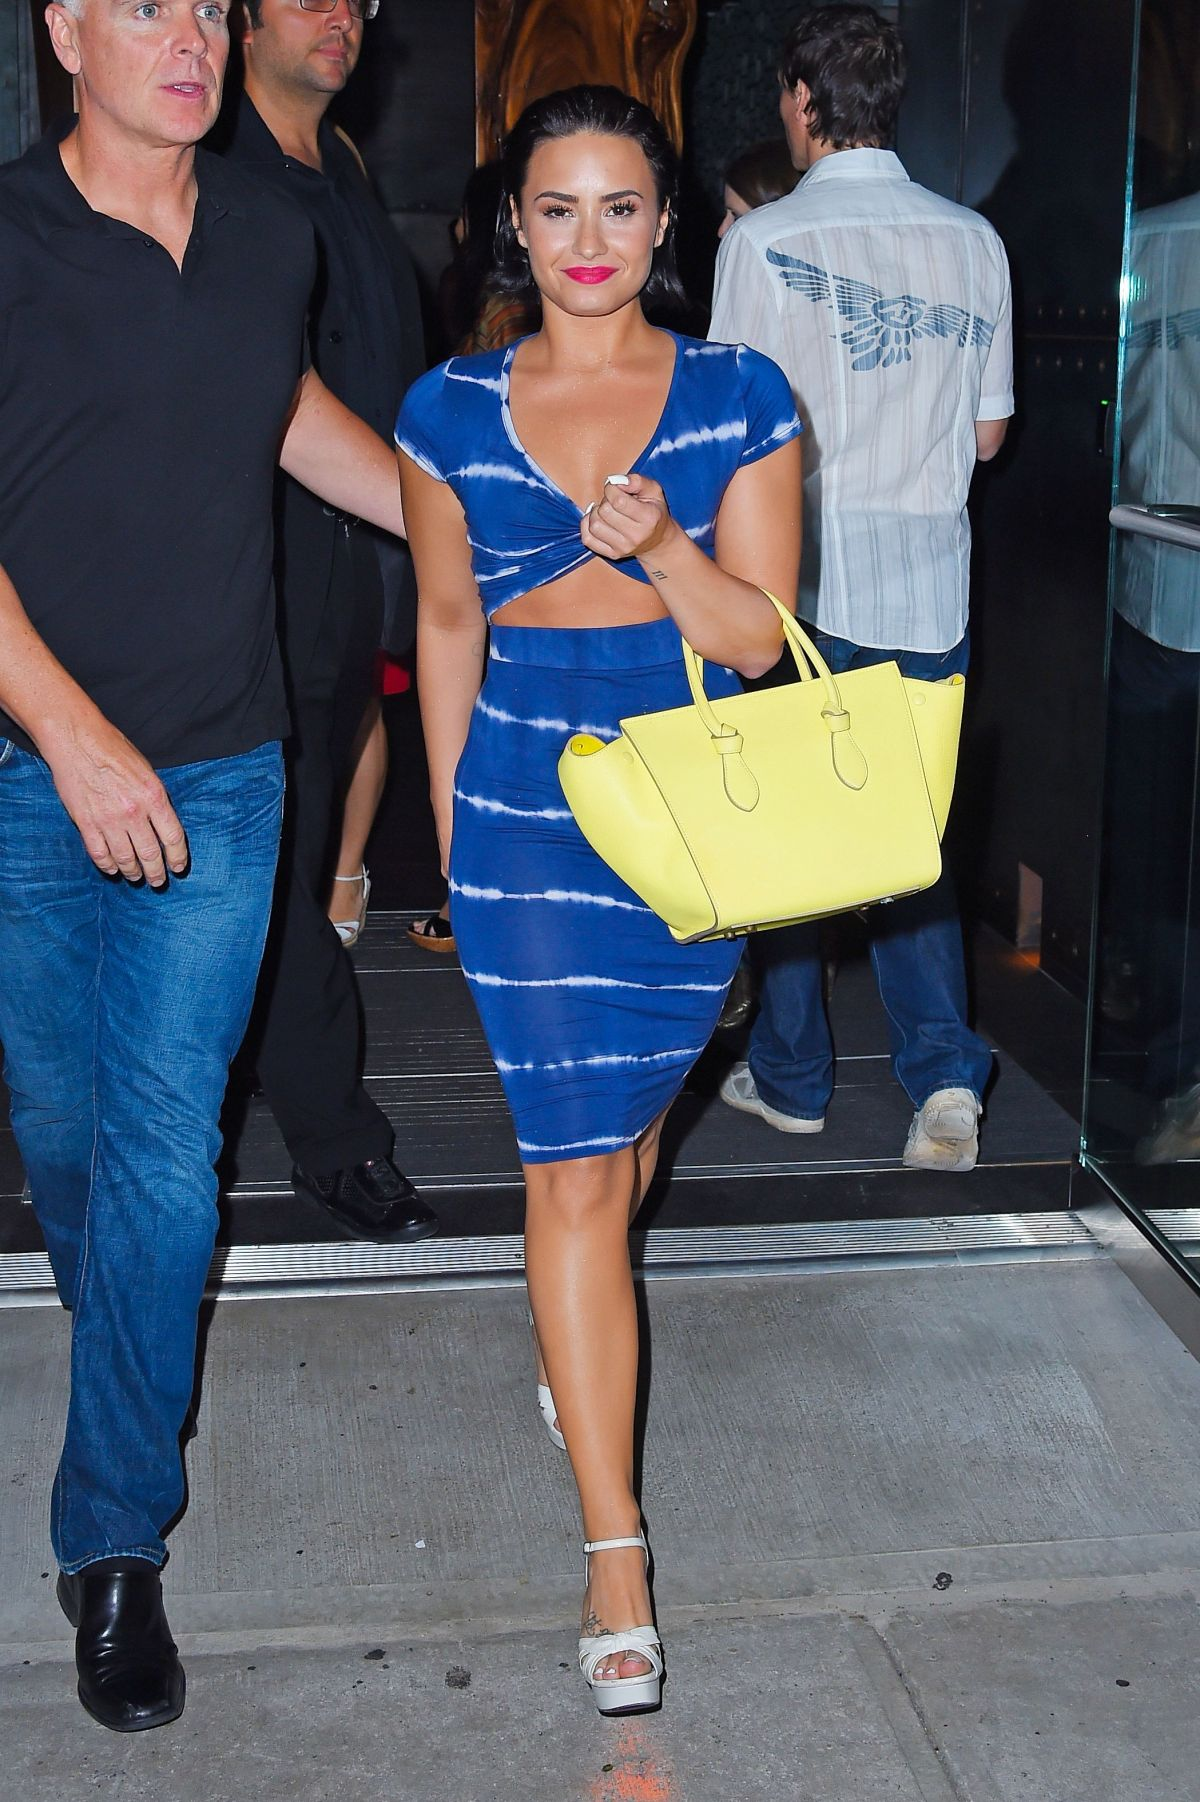 demi lovato leaves zuma restaurant in new york 07012015 - Blue Restaurant 2015